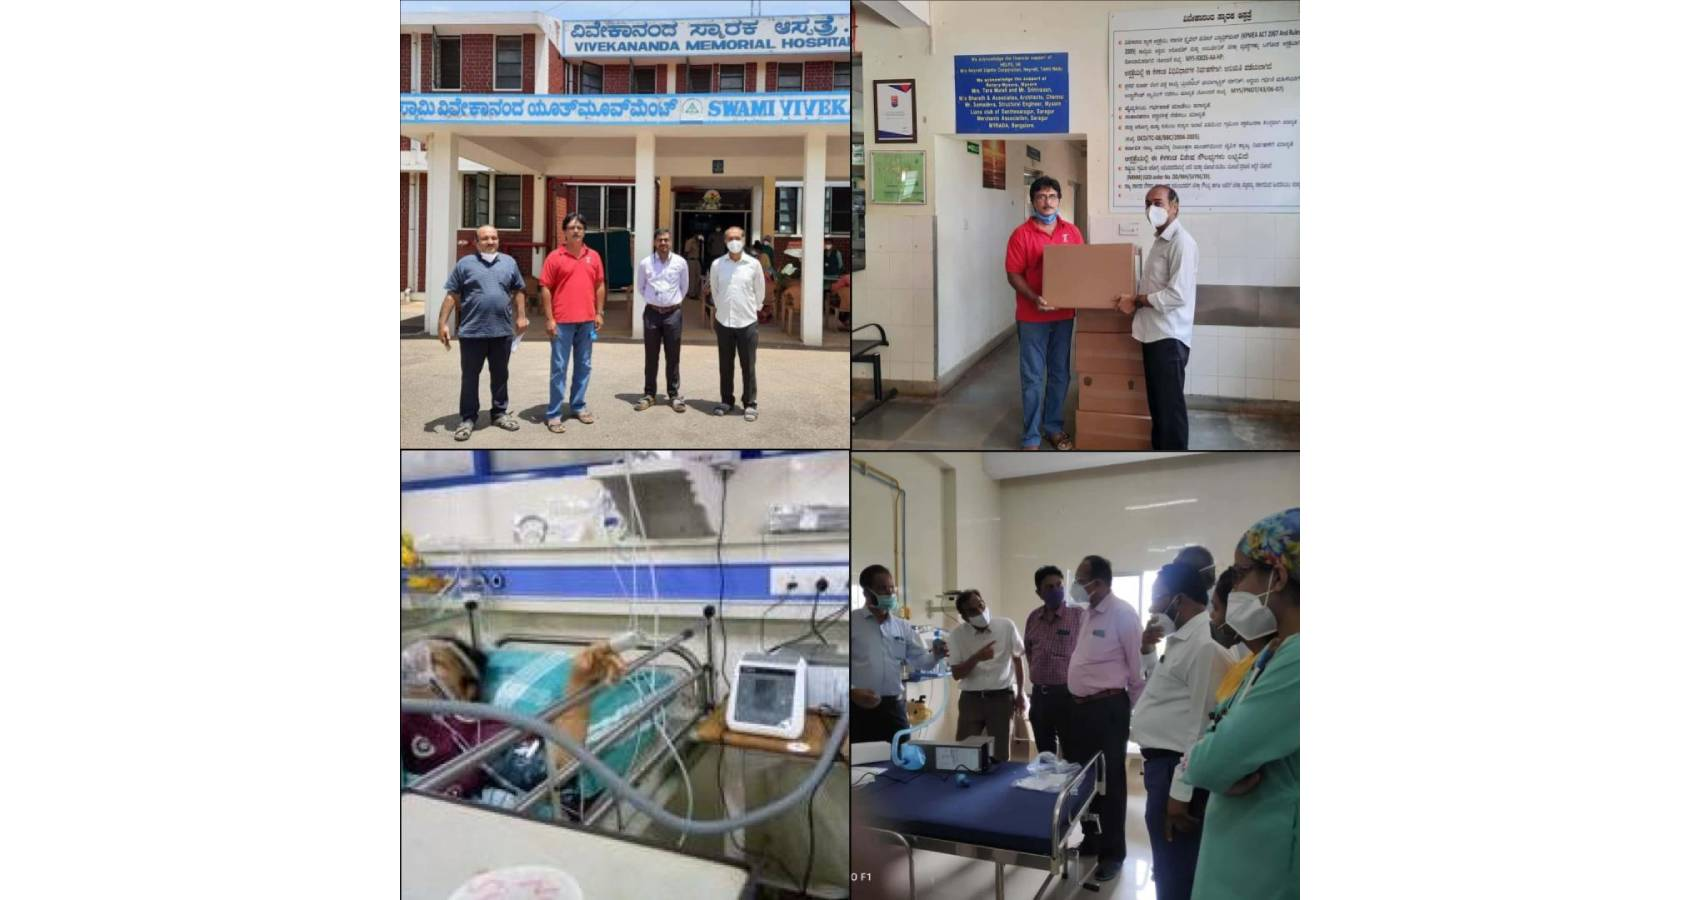 Dr. Amit Chakrabarty Leads Efforts On CO VENTILLLATORS DONATION Project For India